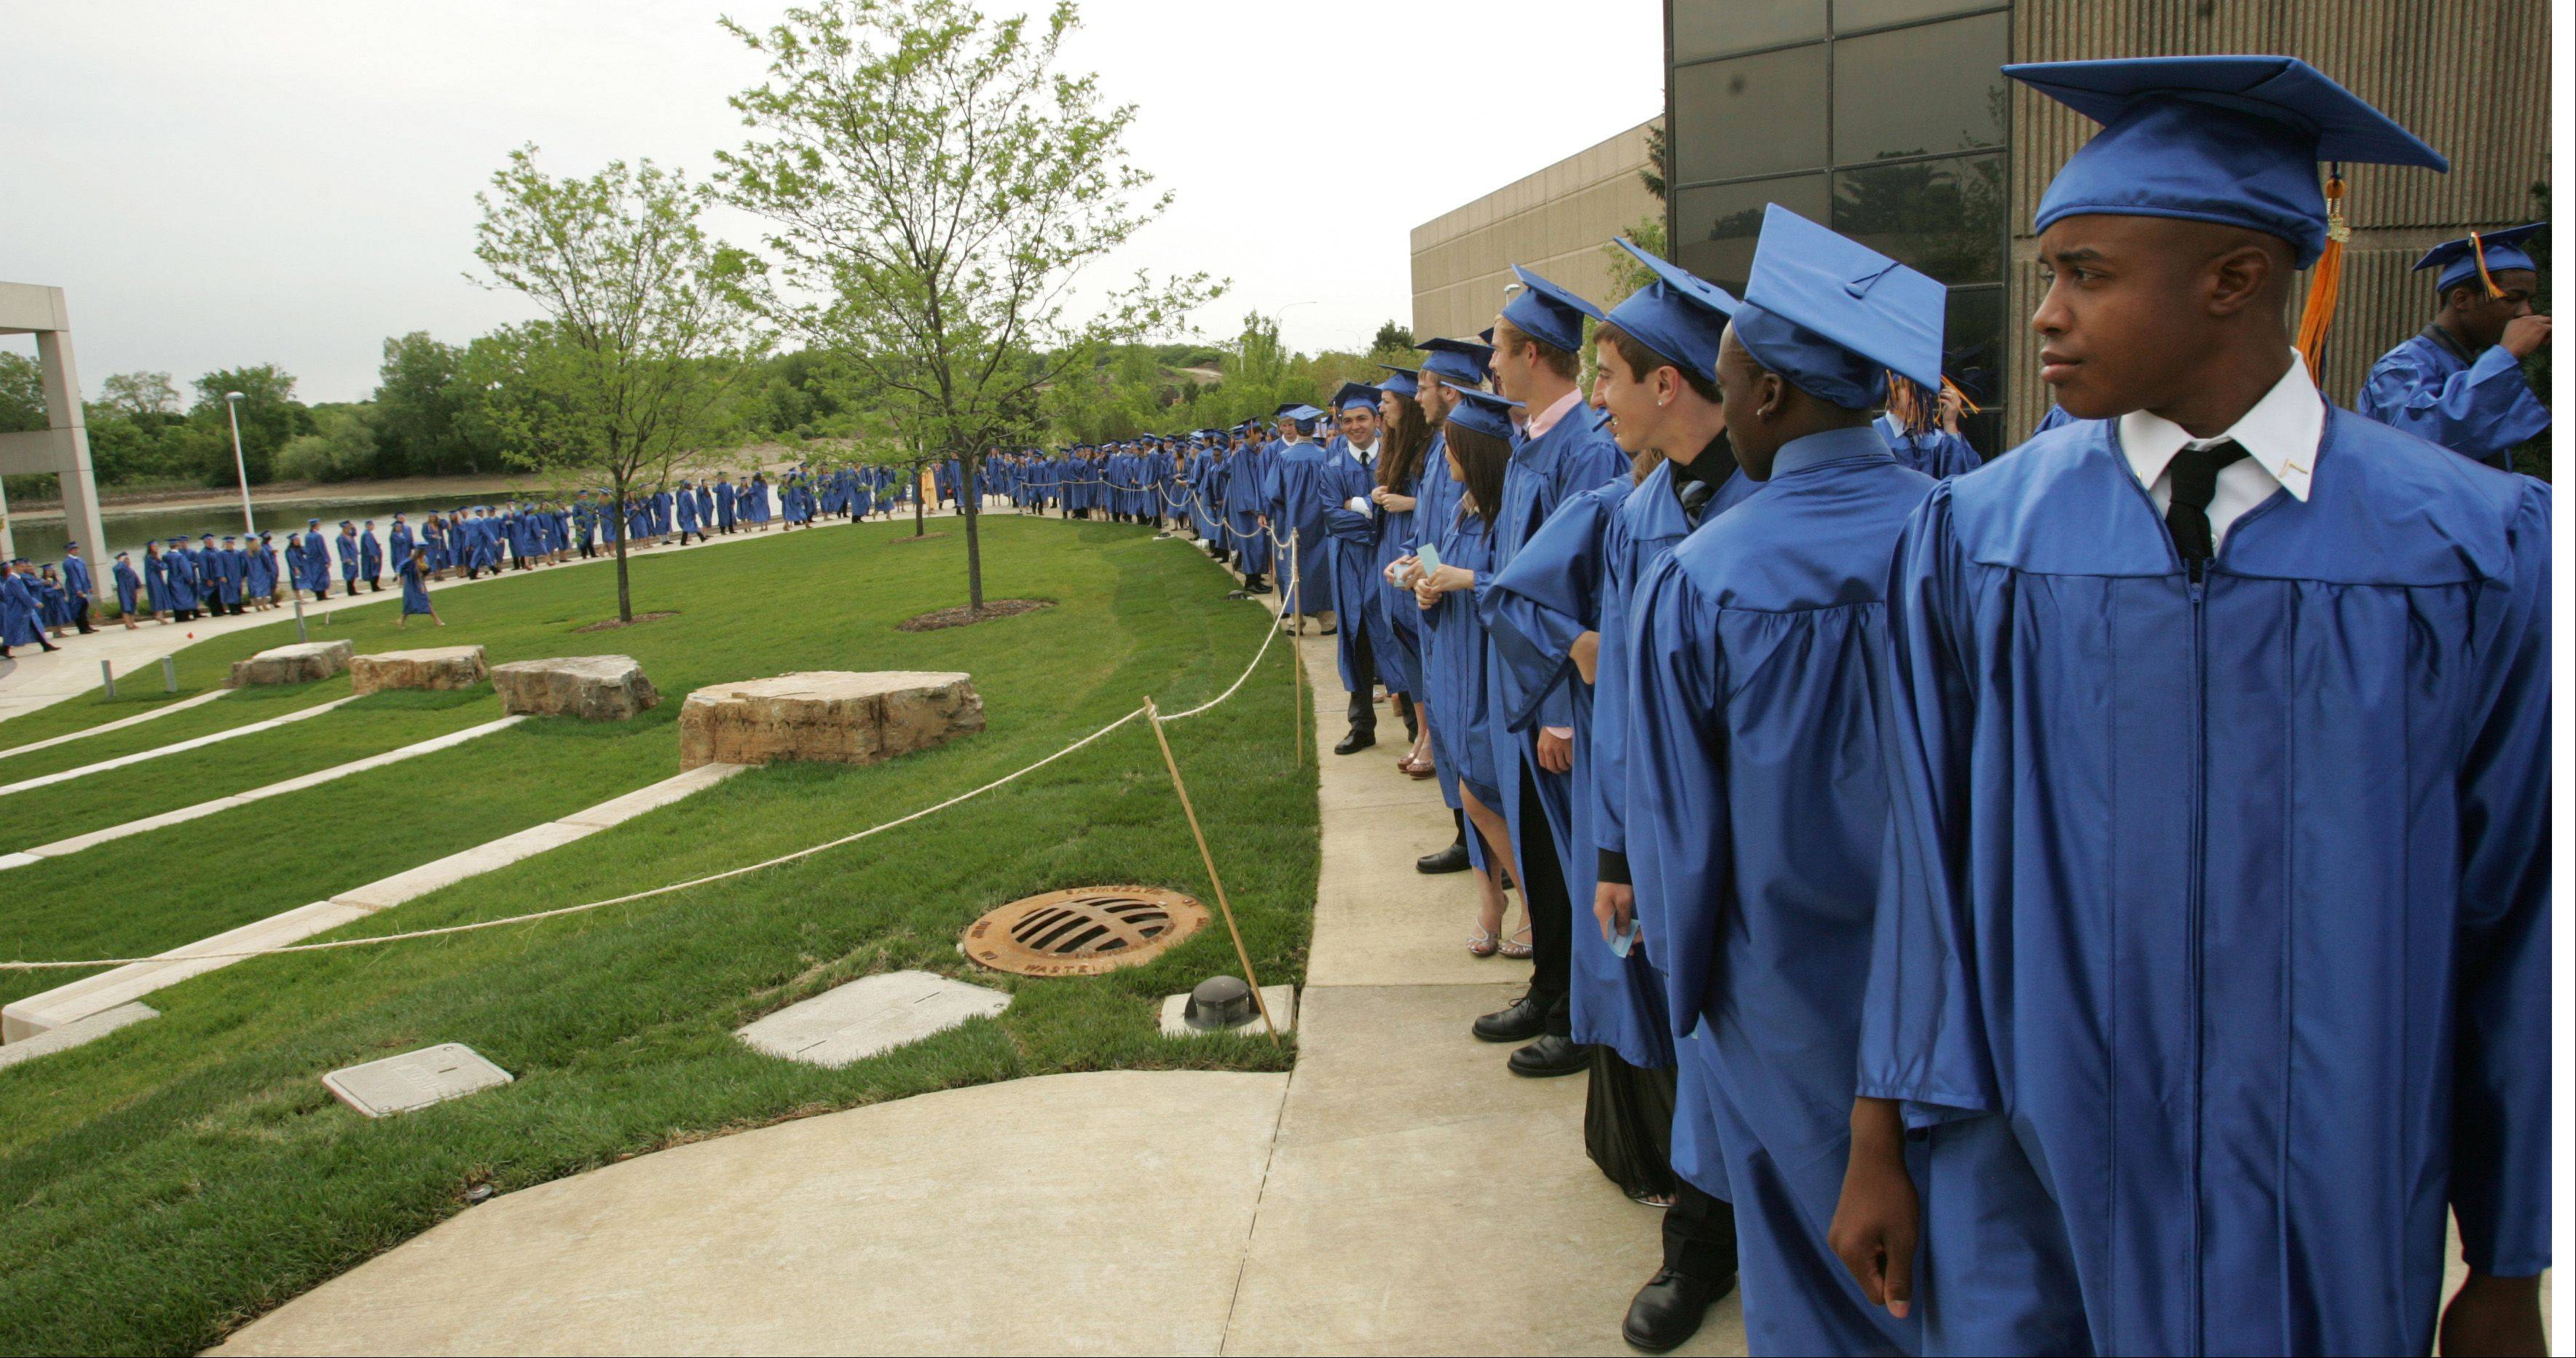 507 Students became graduates at the 2012 Wheaton North High School commencement, held at College of DuPage in Glen Ellyn.